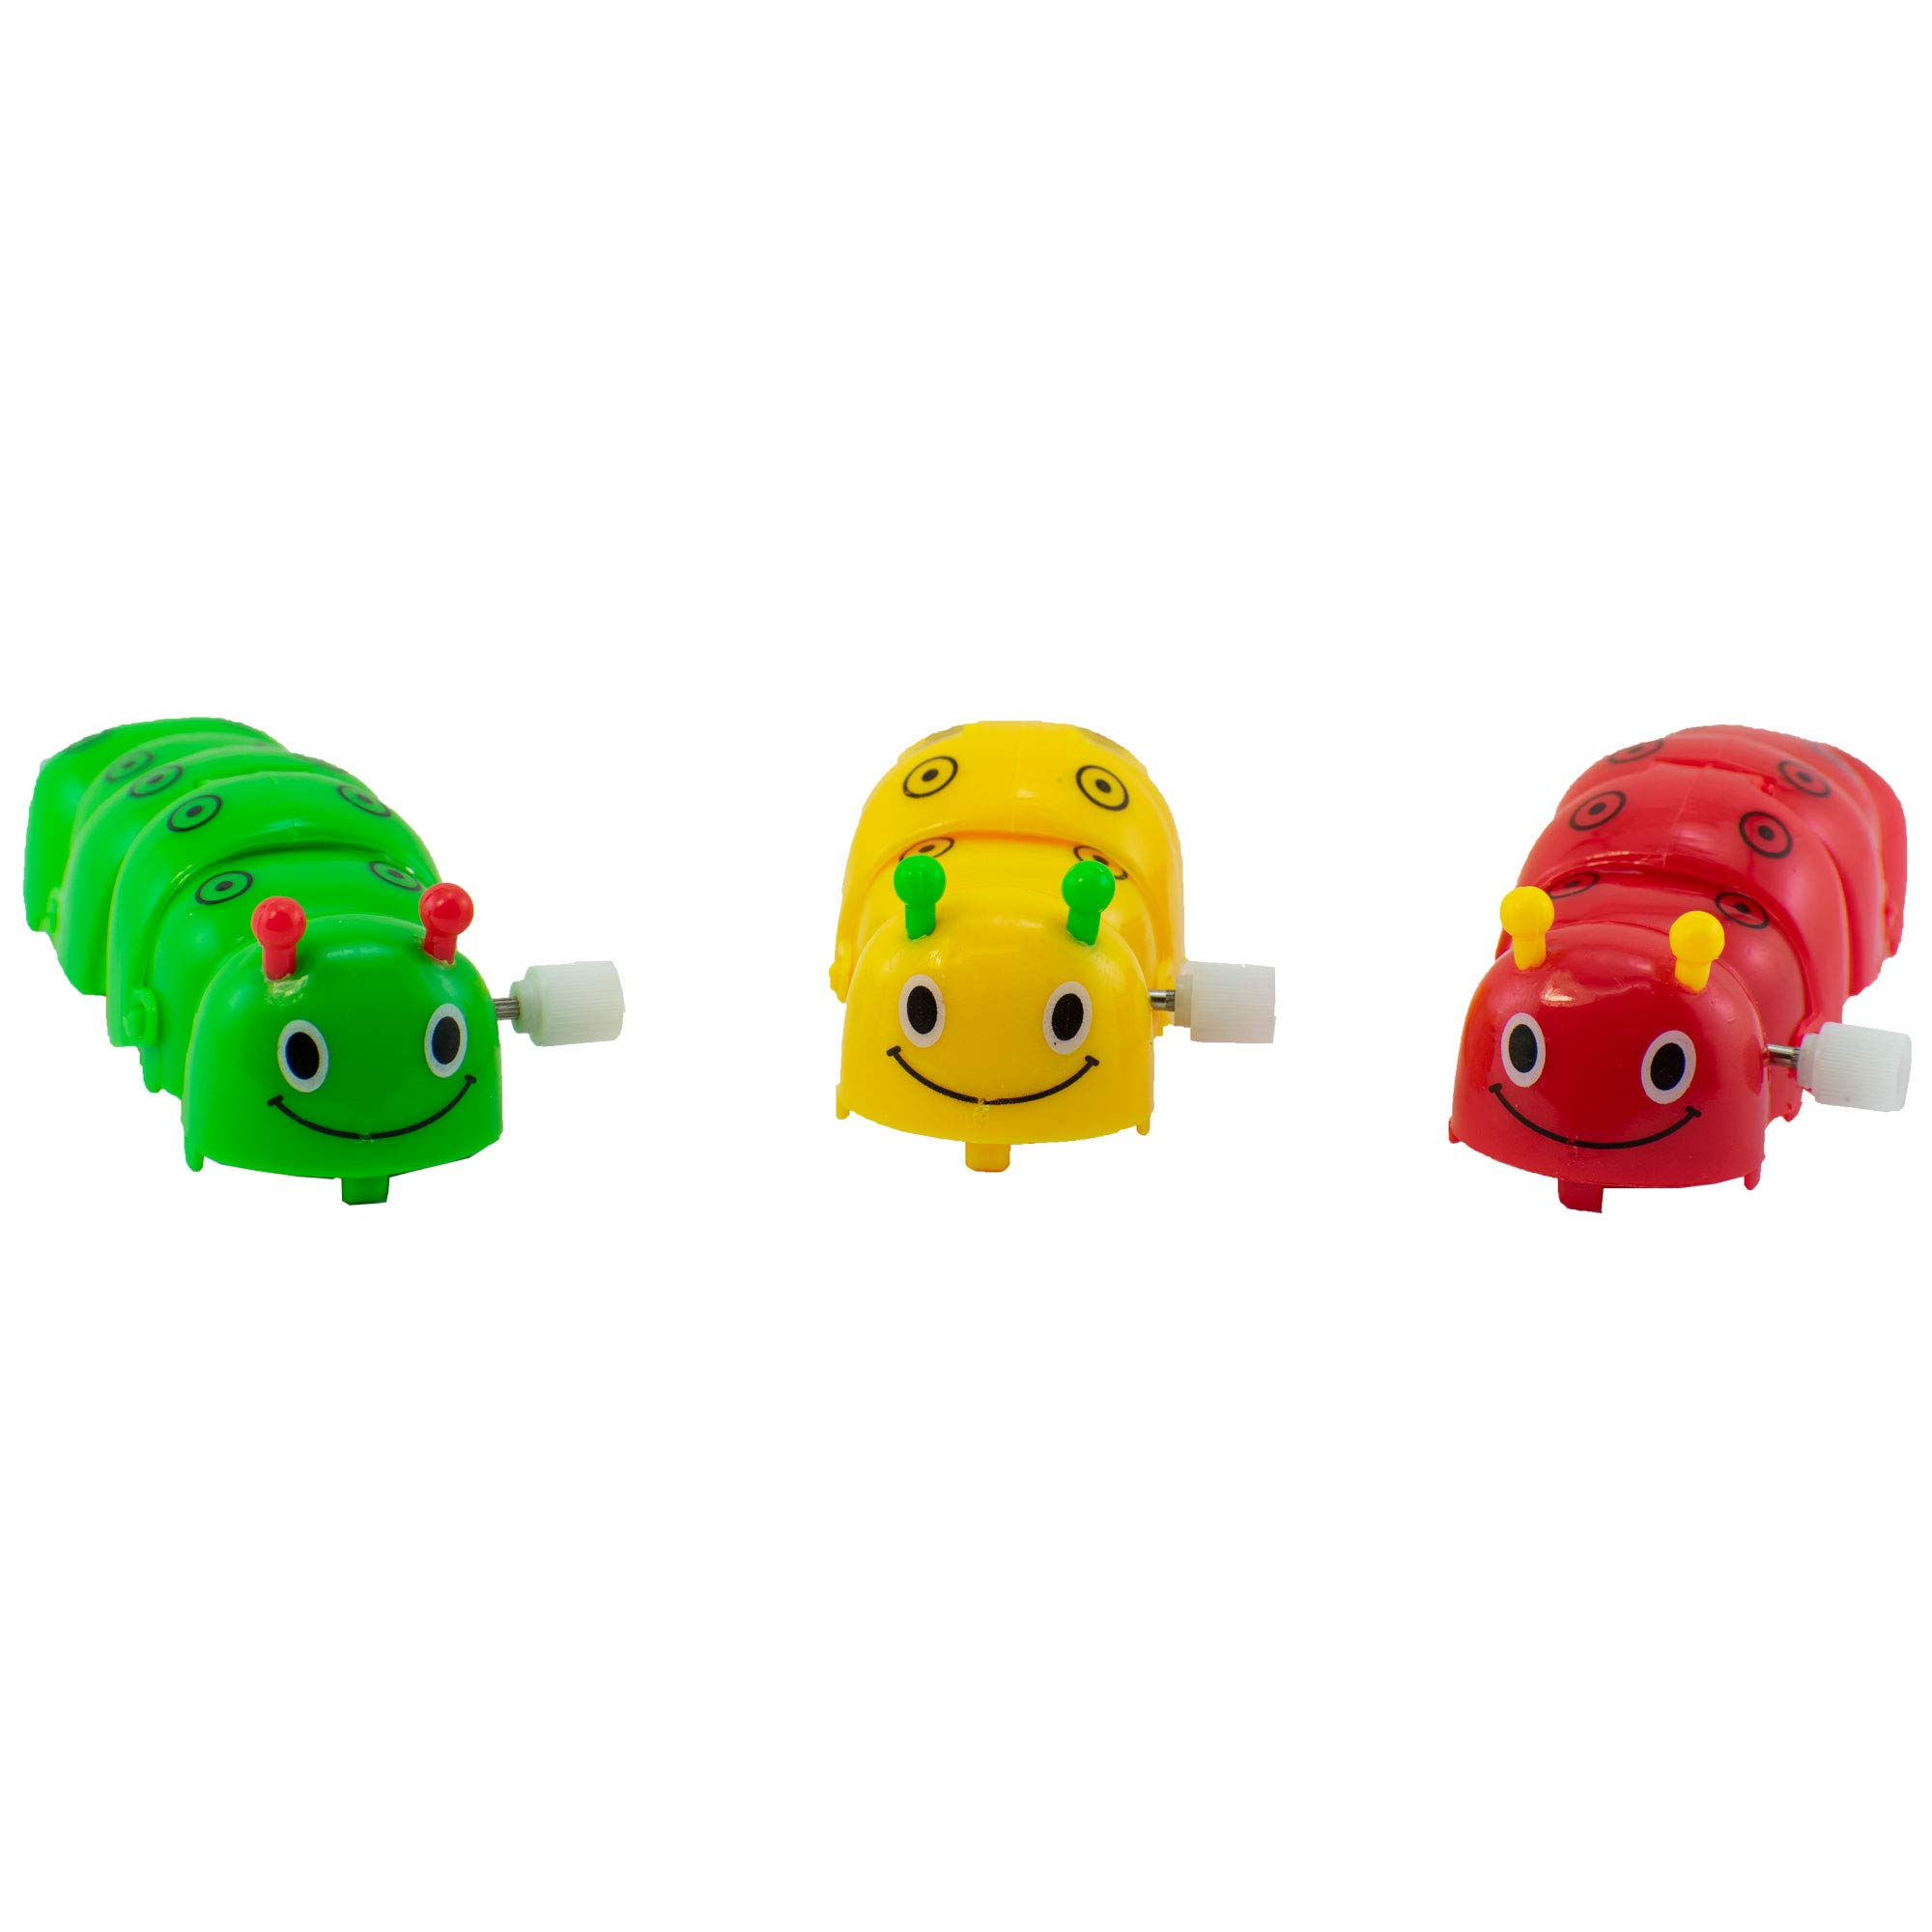 Giggle Time Wind-Up Caterpillar Assortment - (24) Pieces - Assorted Bright Colors - for Kids, Boys and Girls, Party Favors, Pinata Stuffers, Children's Gift Bags, Carnival Prizes by Giggle Time (Image #3)